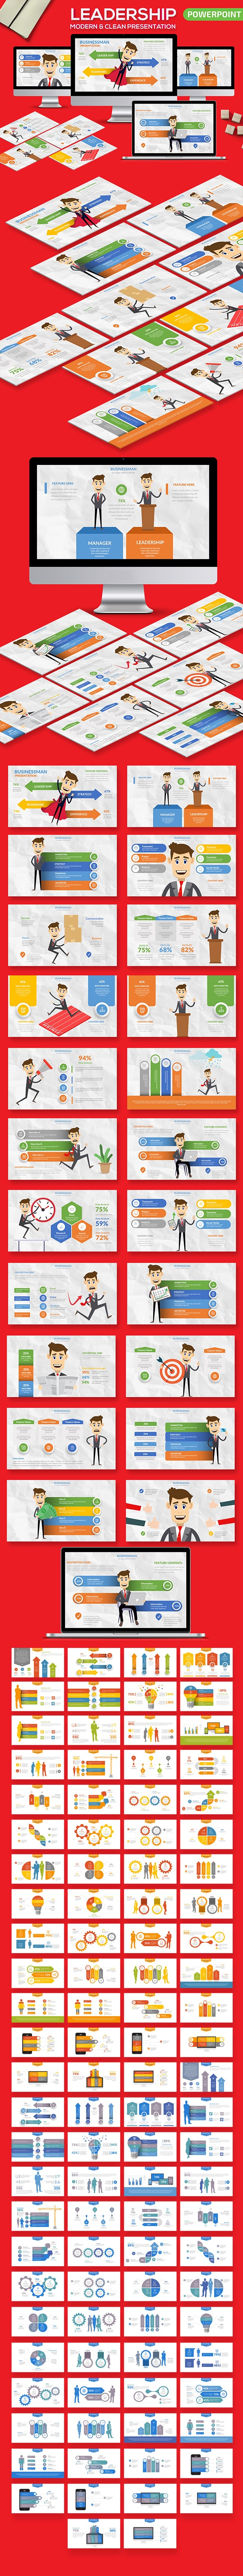 Leadership Powerpoint Presentation - PowerPoint Templates Presentation Templates